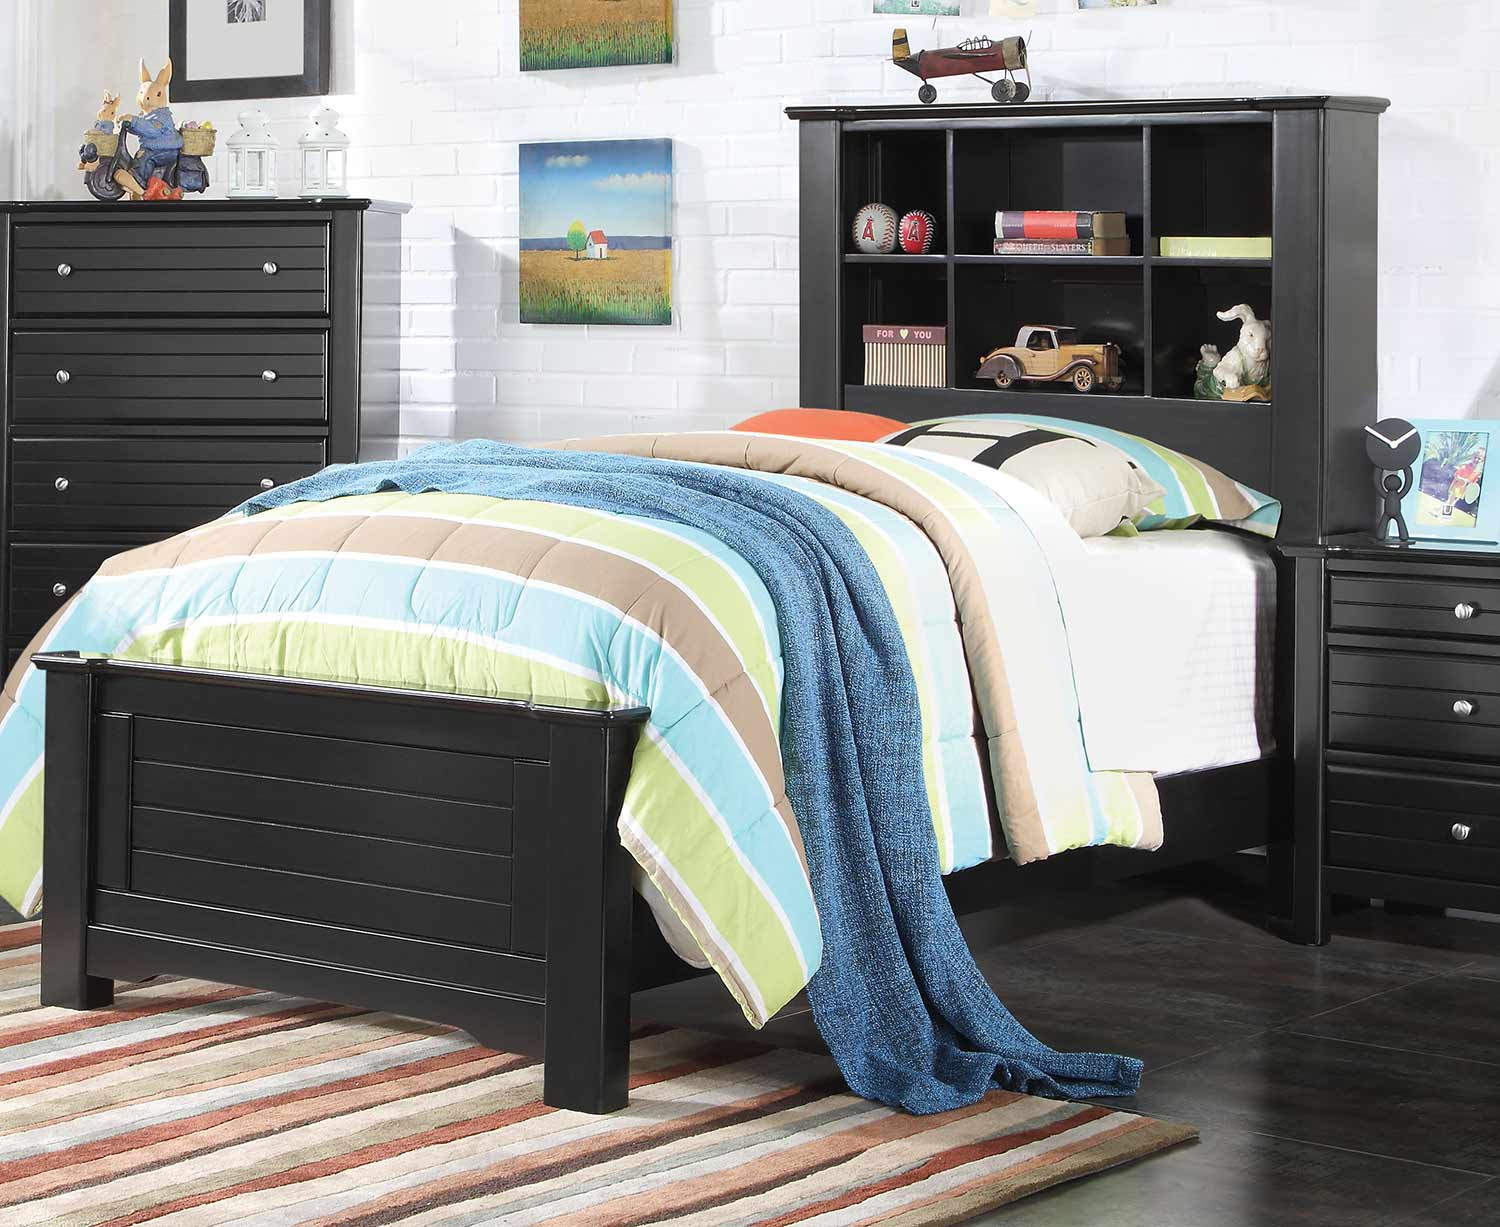 Acme Mallowsea Bed - Black